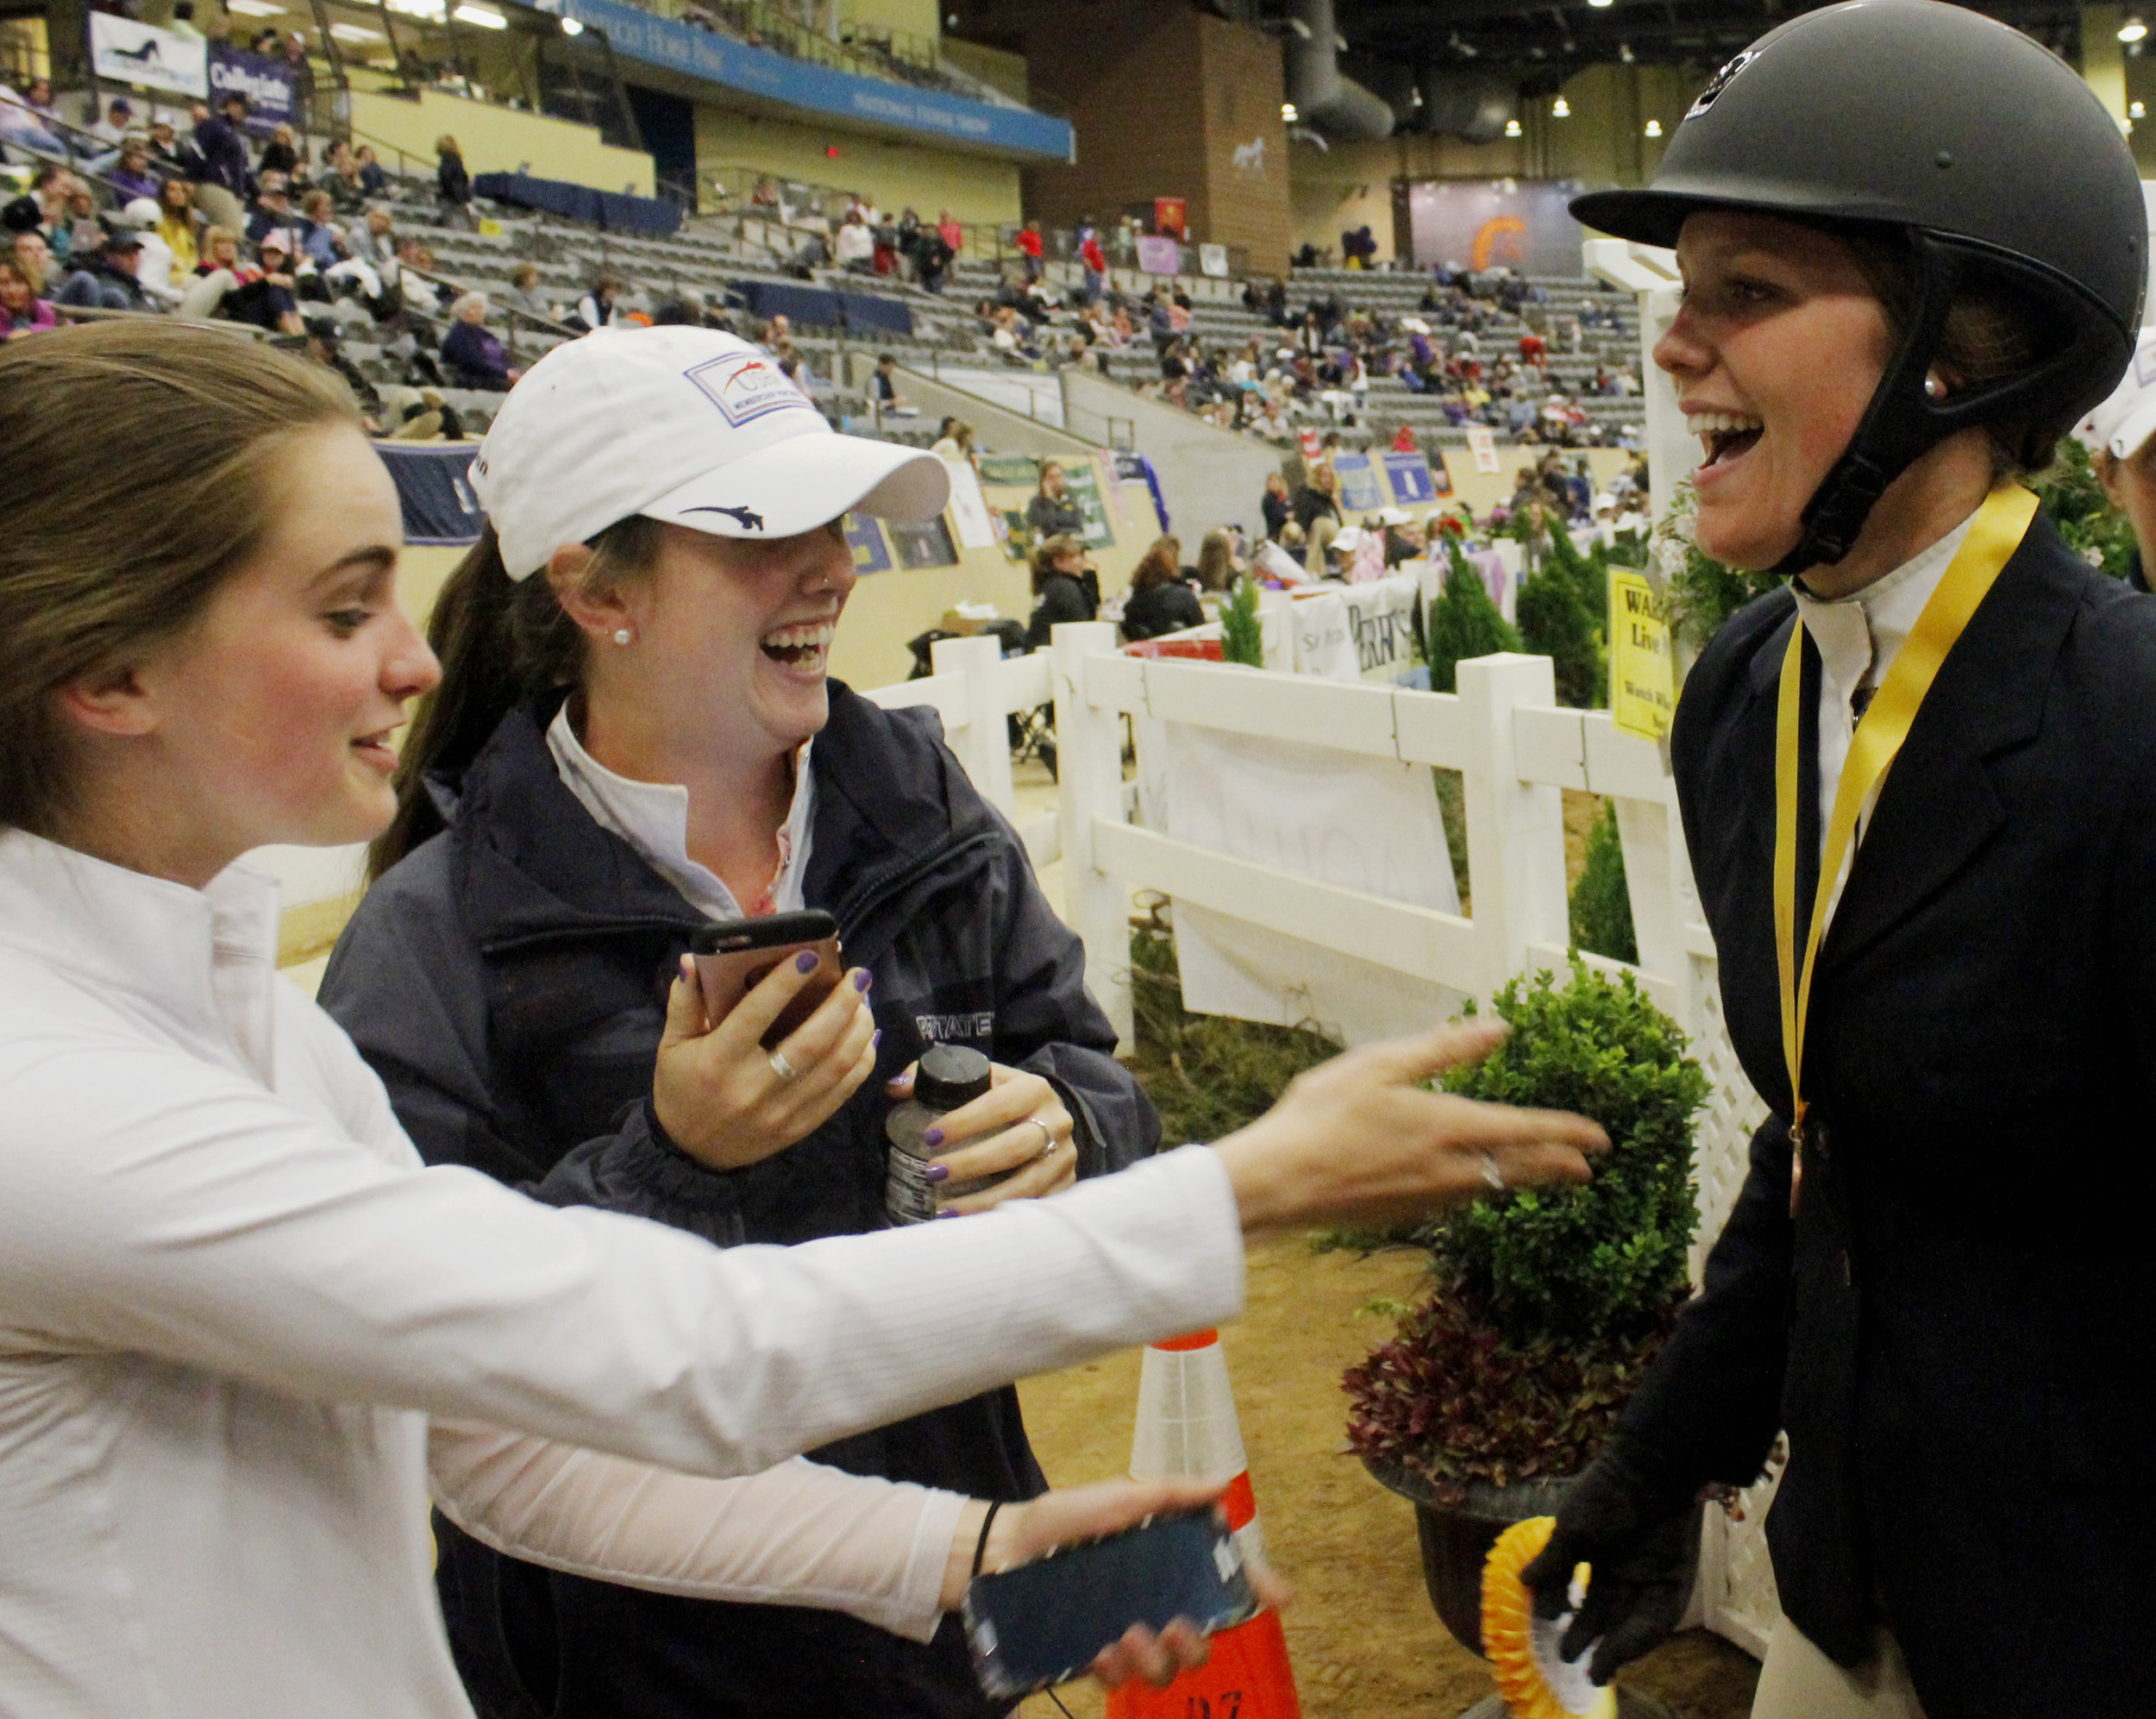 Daniella Carrissimo celebrates her ribbon with teammates at the IHSA National Championship Horse Show. Photo by Erin O'Neill